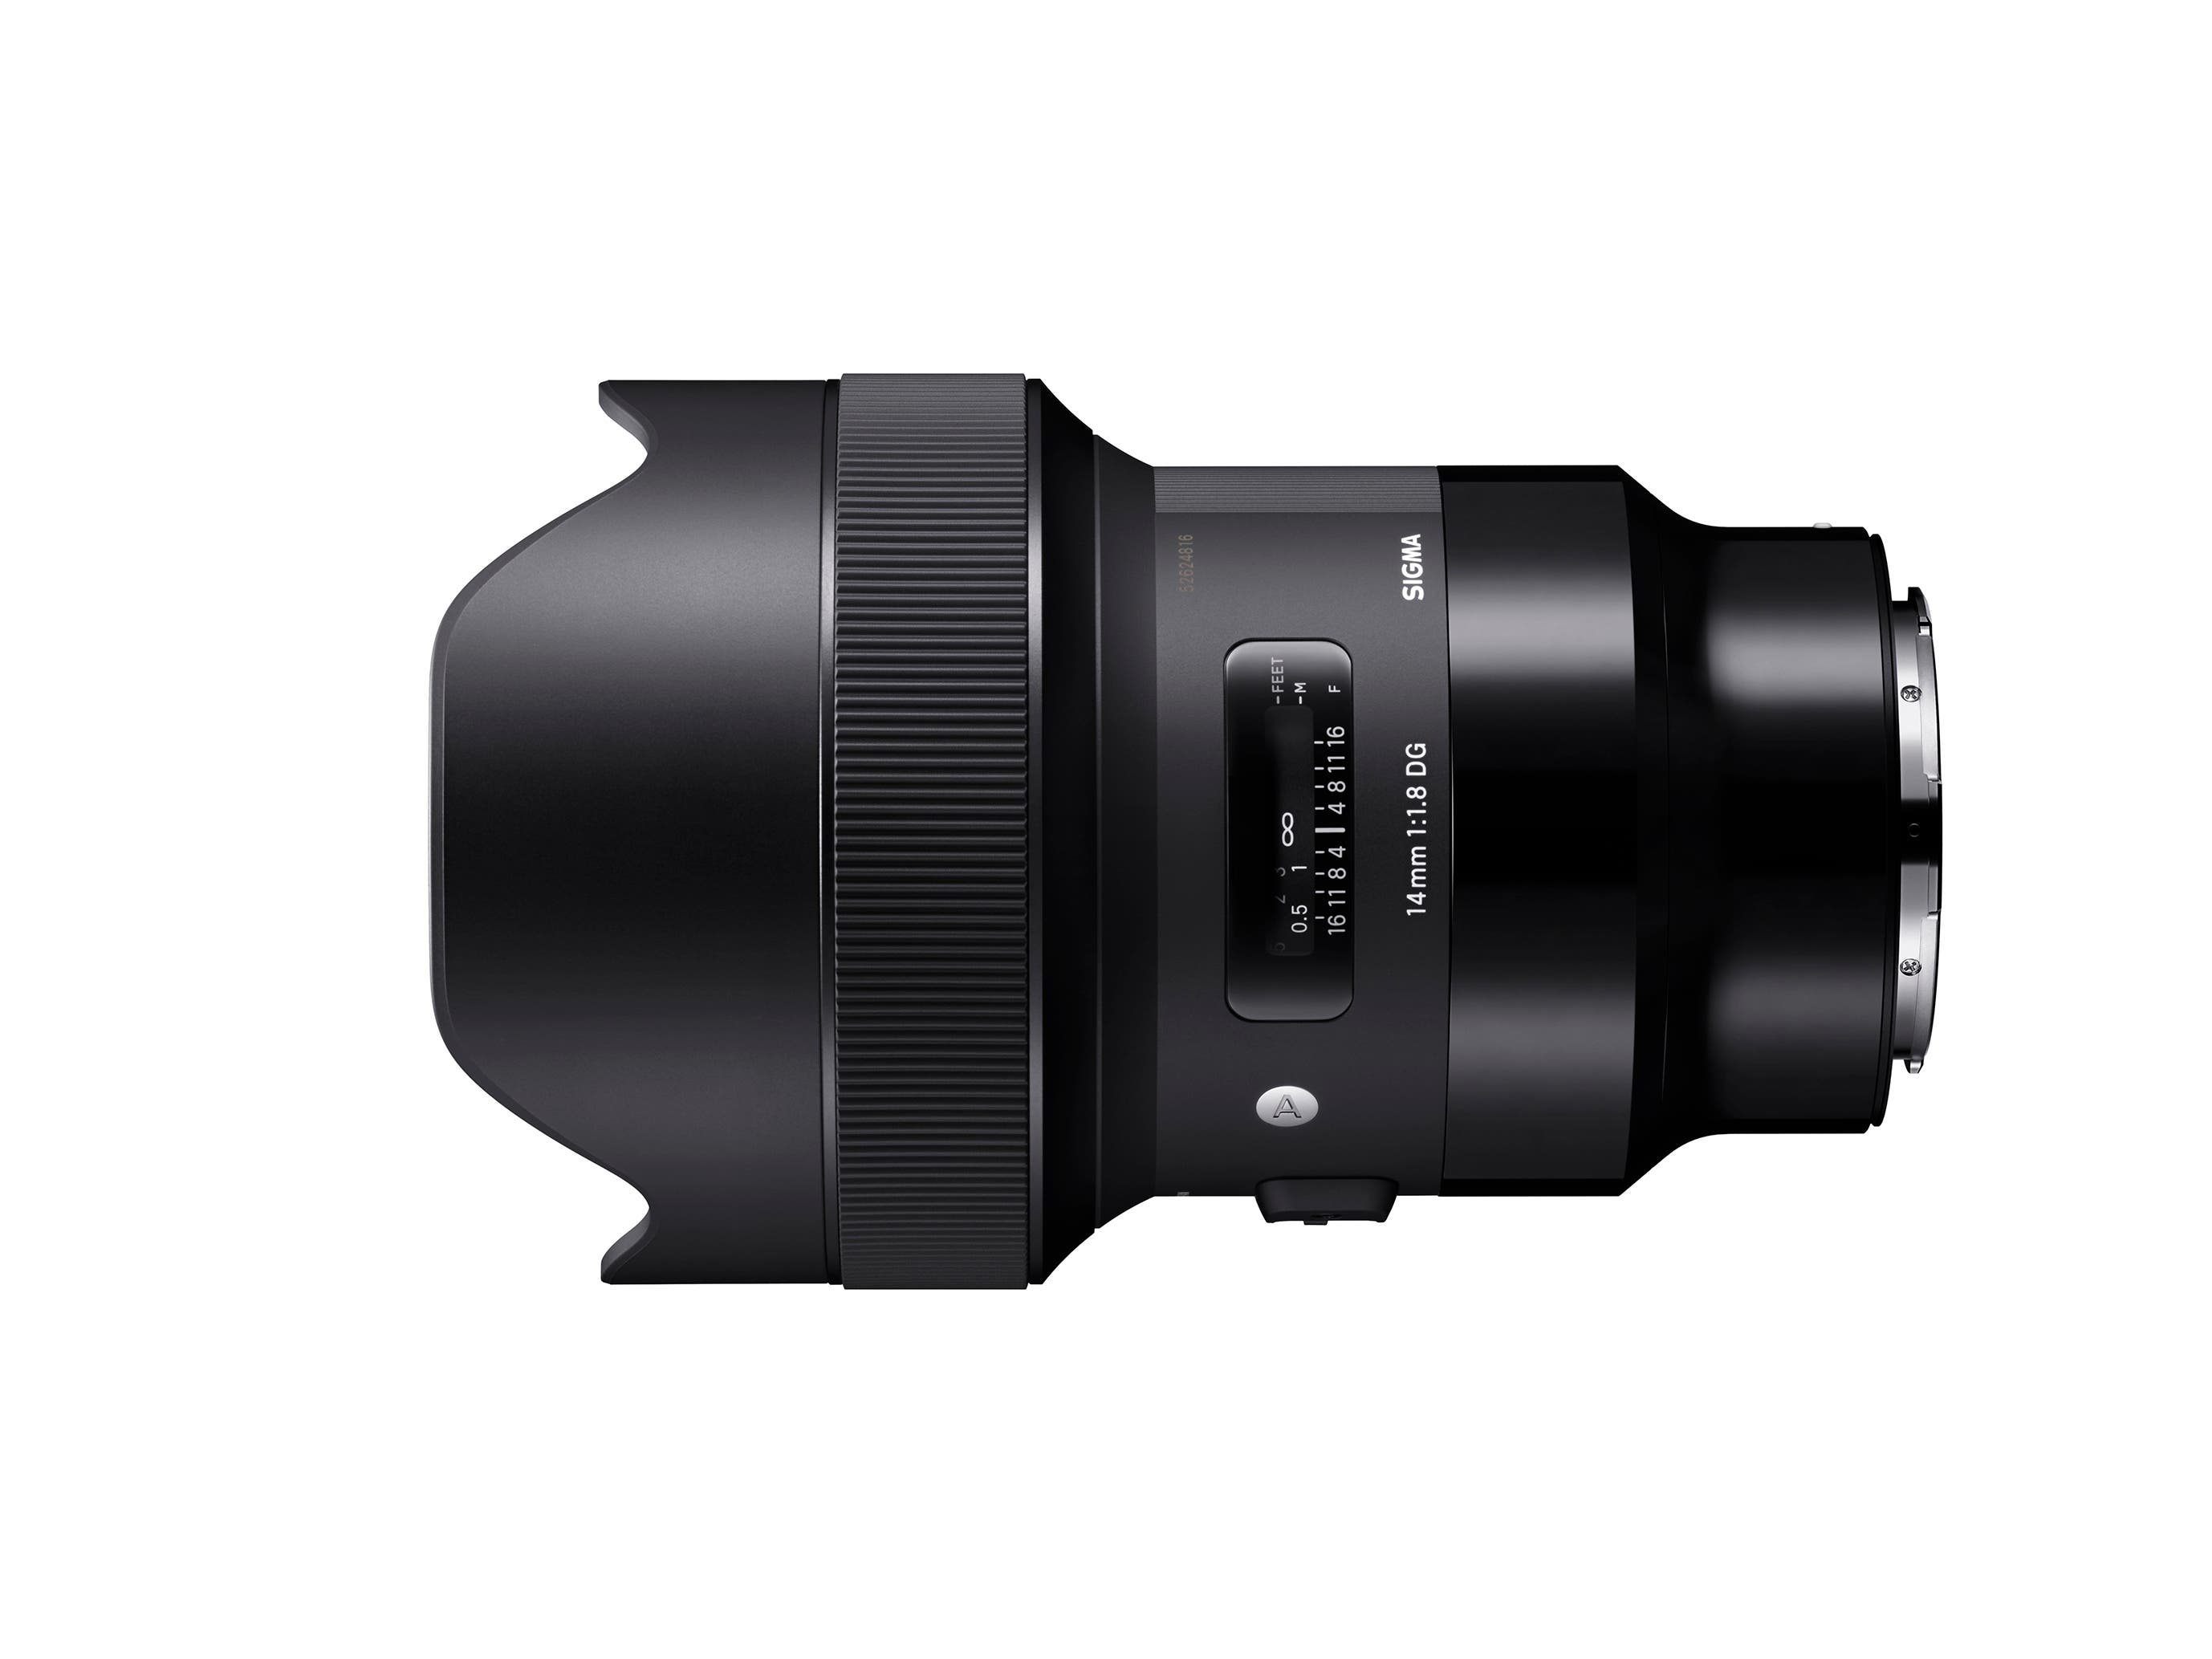 Sigma Updates 11 of Their Art Lens Primes for the L Mount